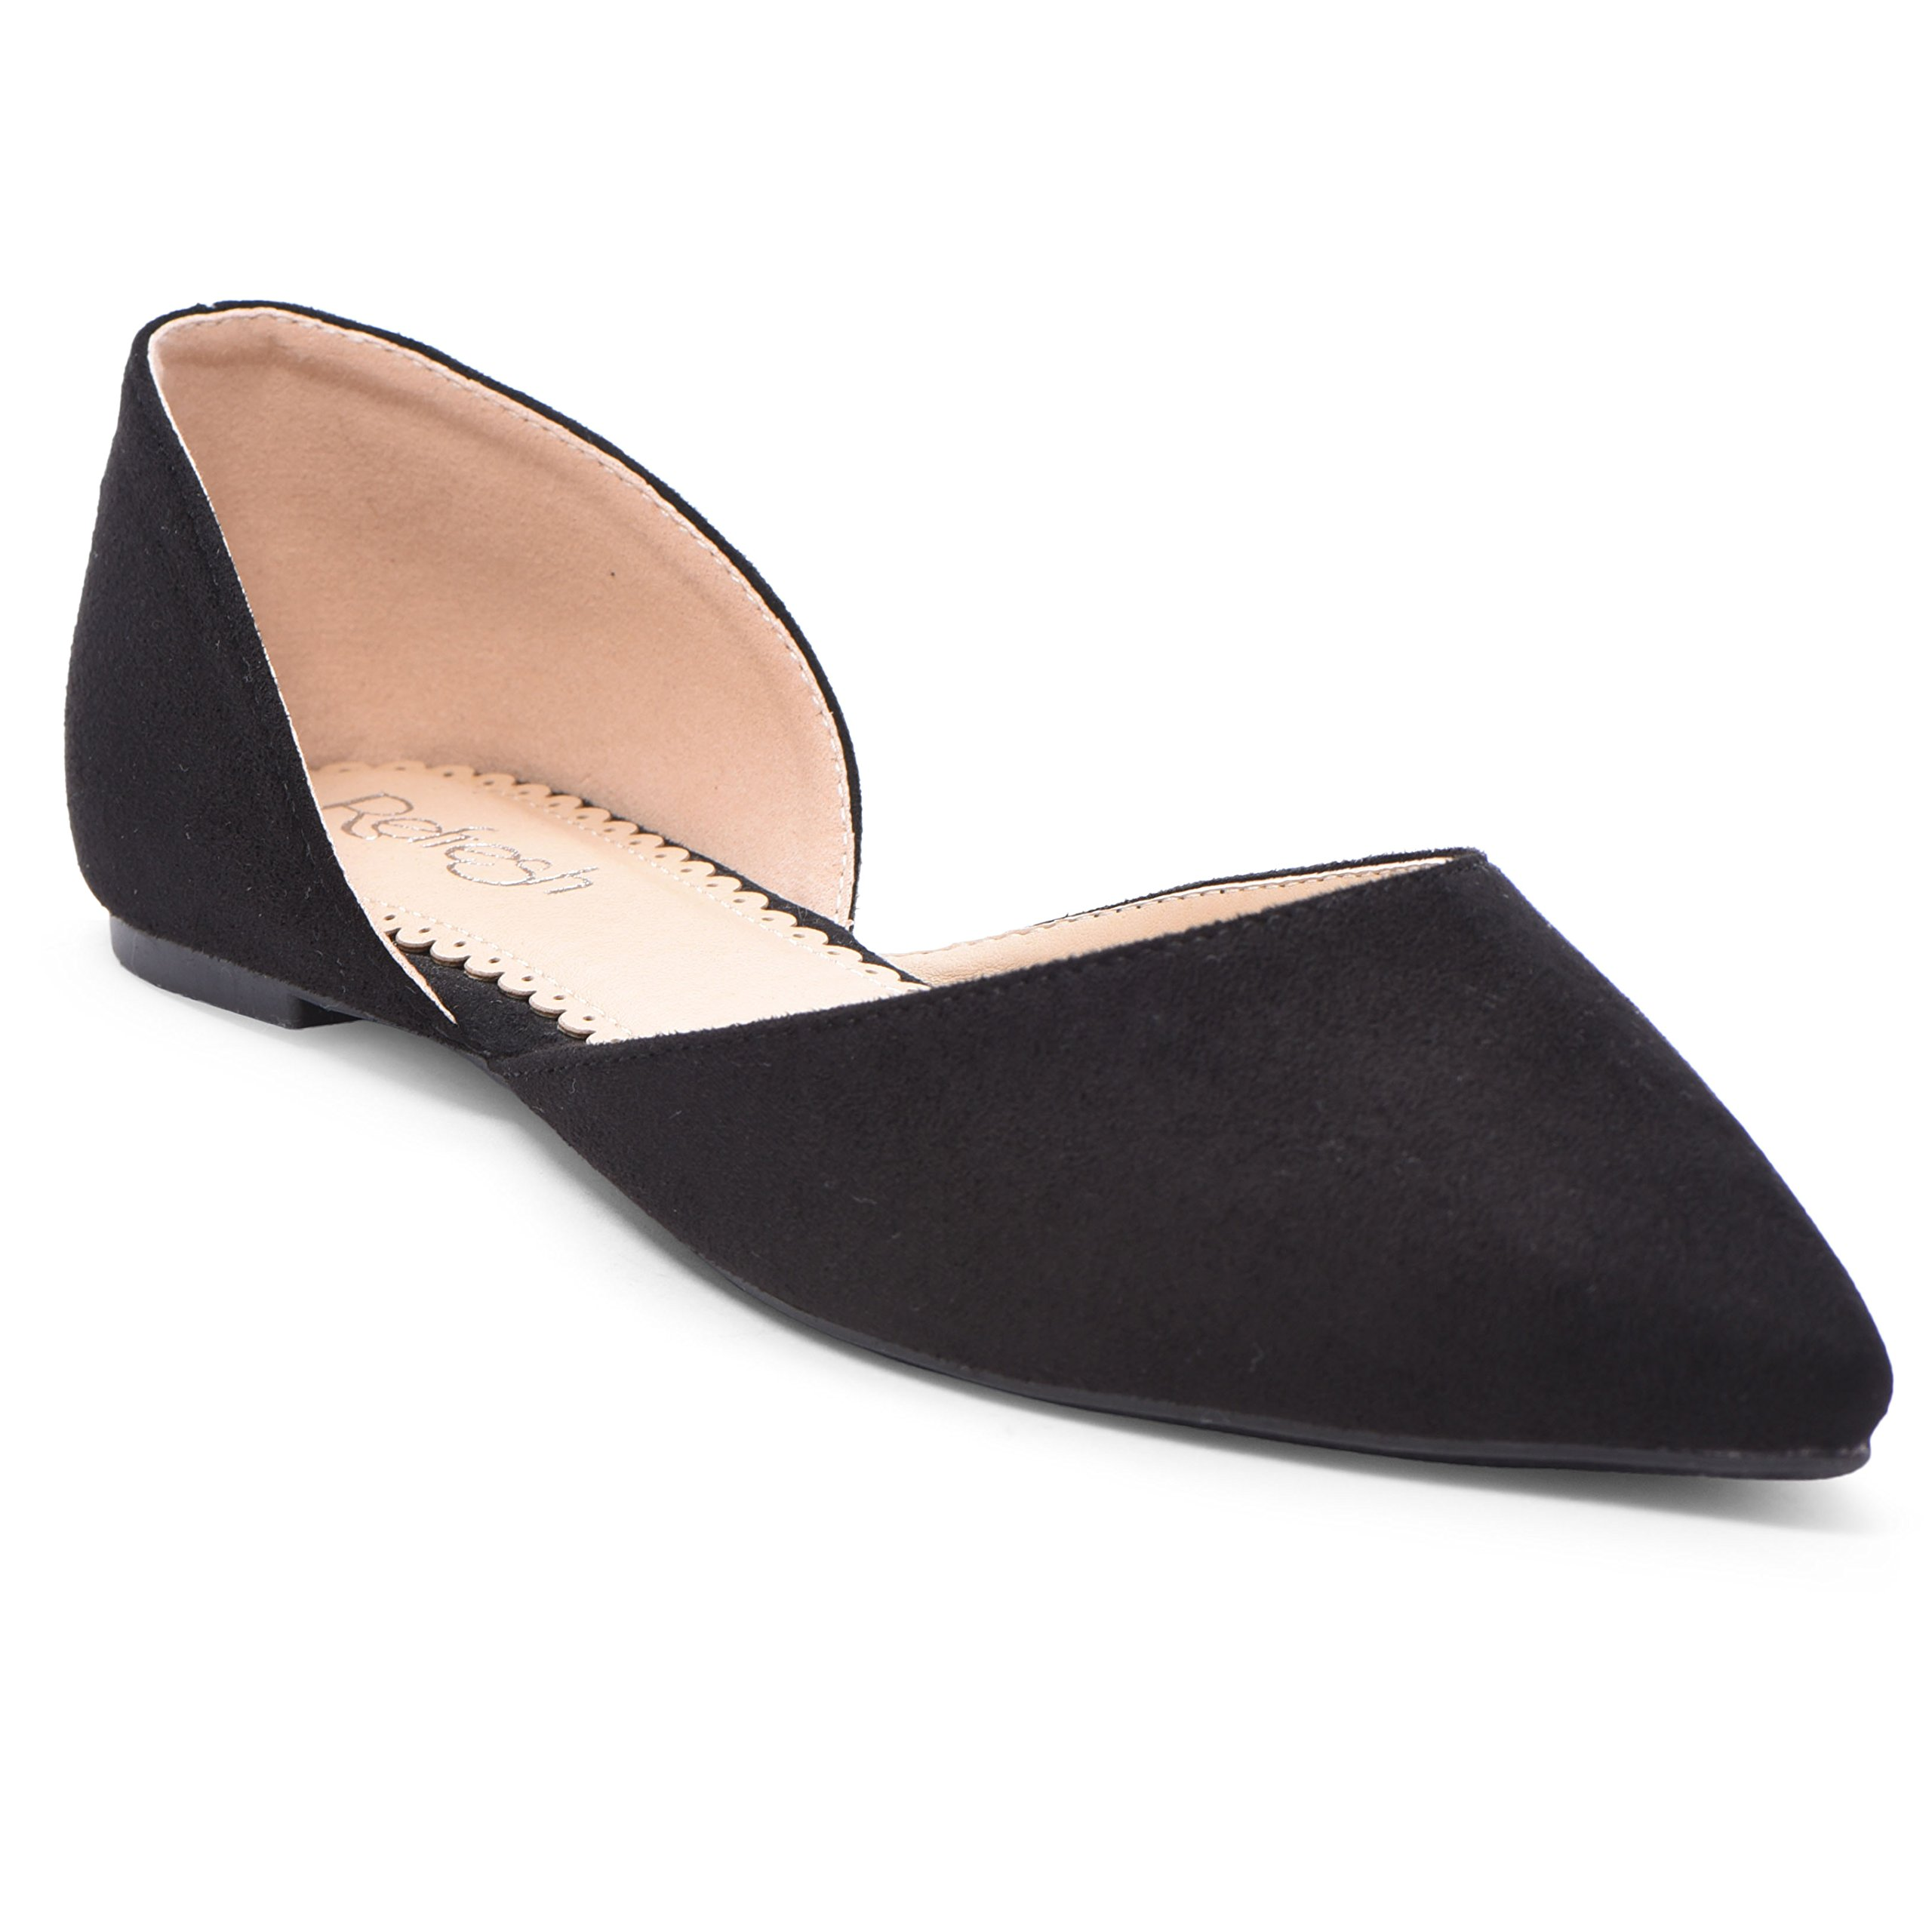 Women's Ballet Flat D'Orsay Comfort Light Pointed Toe Slip On Casual Shoes Black Suede 8